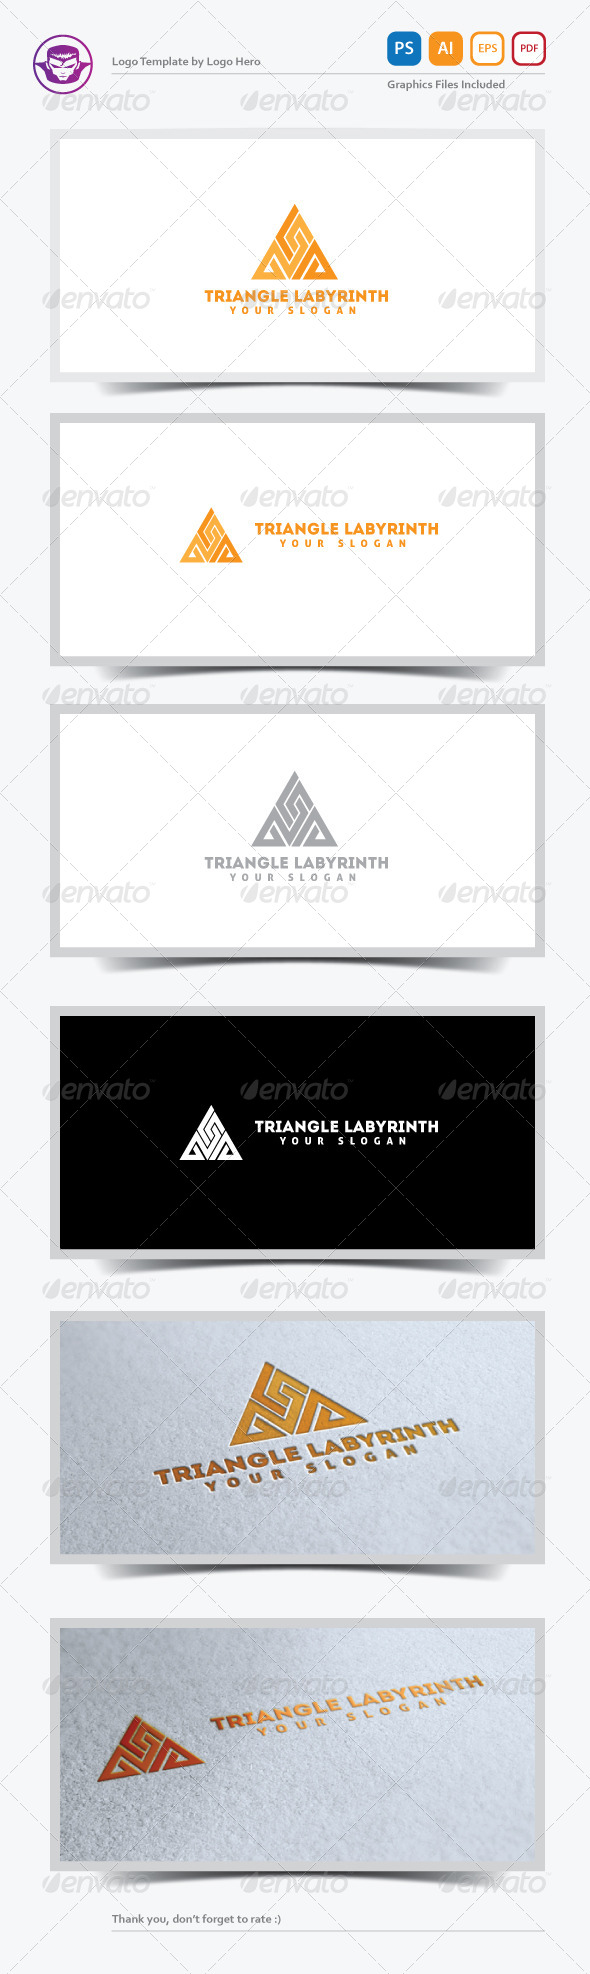 GraphicRiver Triangle Labyrinth Logo Template 5232100